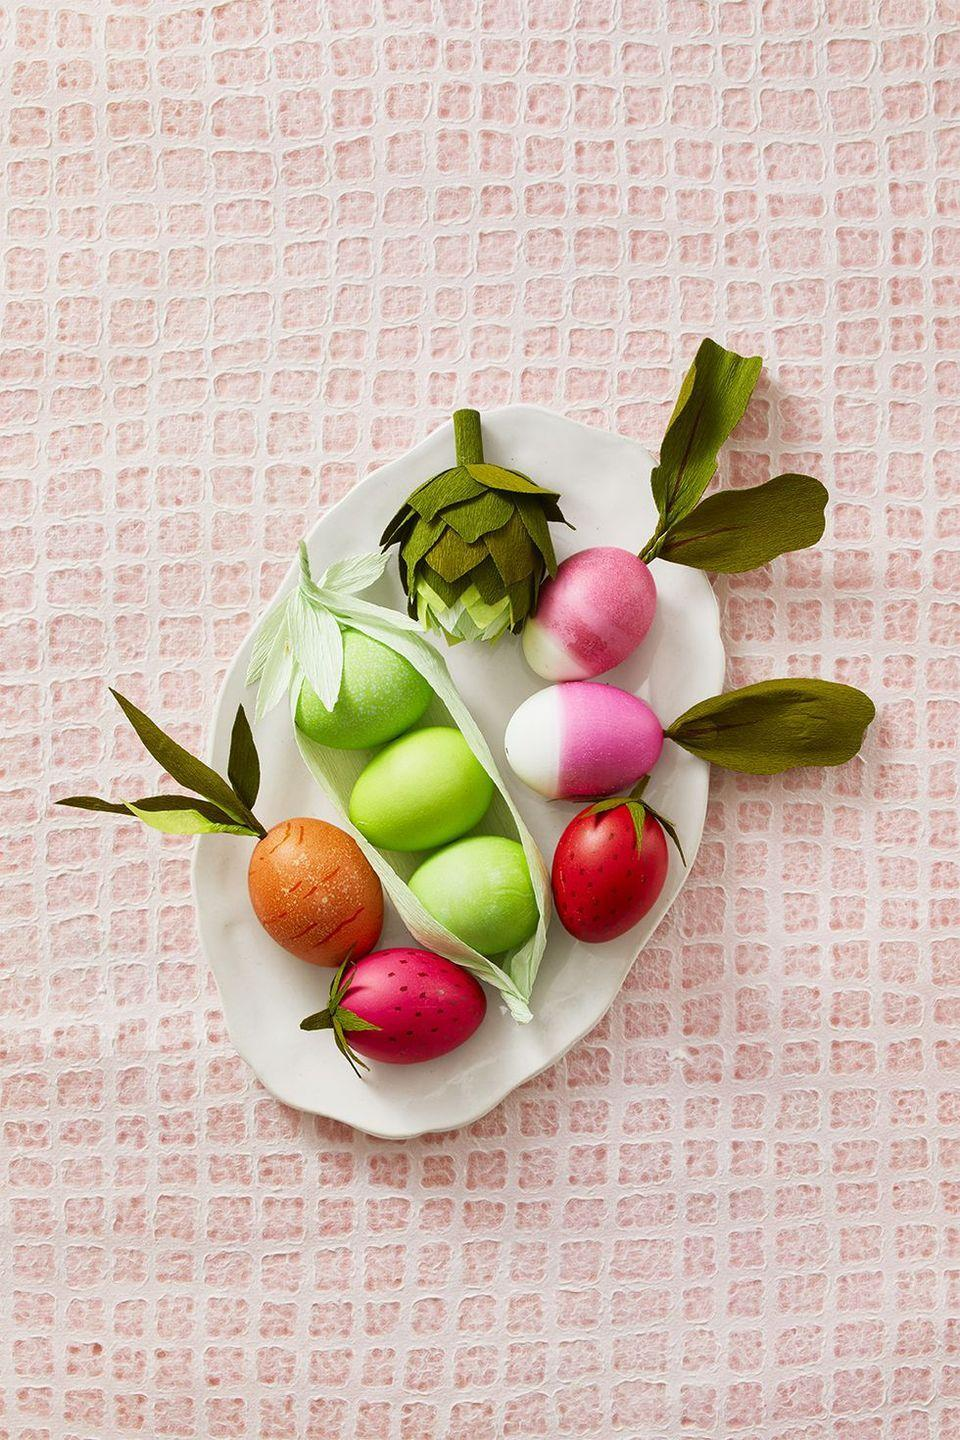 "<p>Make sure you don't confuse these eggs for actual vegetables when preparing your <a href=""https://www.womansday.com/food-recipes/food-drinks/g2874/easter-dinner-ideas/"" rel=""nofollow noopener"" target=""_blank"" data-ylk=""slk:Easter dinner"" class=""link rapid-noclick-resp"">Easter dinner</a> or <a href=""https://www.womansday.com/food-recipes/g2867/easter-brunch-recipes/"" rel=""nofollow noopener"" target=""_blank"" data-ylk=""slk:Sunday brunch"" class=""link rapid-noclick-resp"">Sunday brunch</a>!</p><p><em>Get the tutorial at <a href=""https://www.goodhousekeeping.com/holidays/easter-ideas/g419/easter-egg-decorating-ideas/?slide=3"" rel=""nofollow noopener"" target=""_blank"" data-ylk=""slk:Good Housekeeping"" class=""link rapid-noclick-resp"">Good Housekeeping</a>. </em></p>"